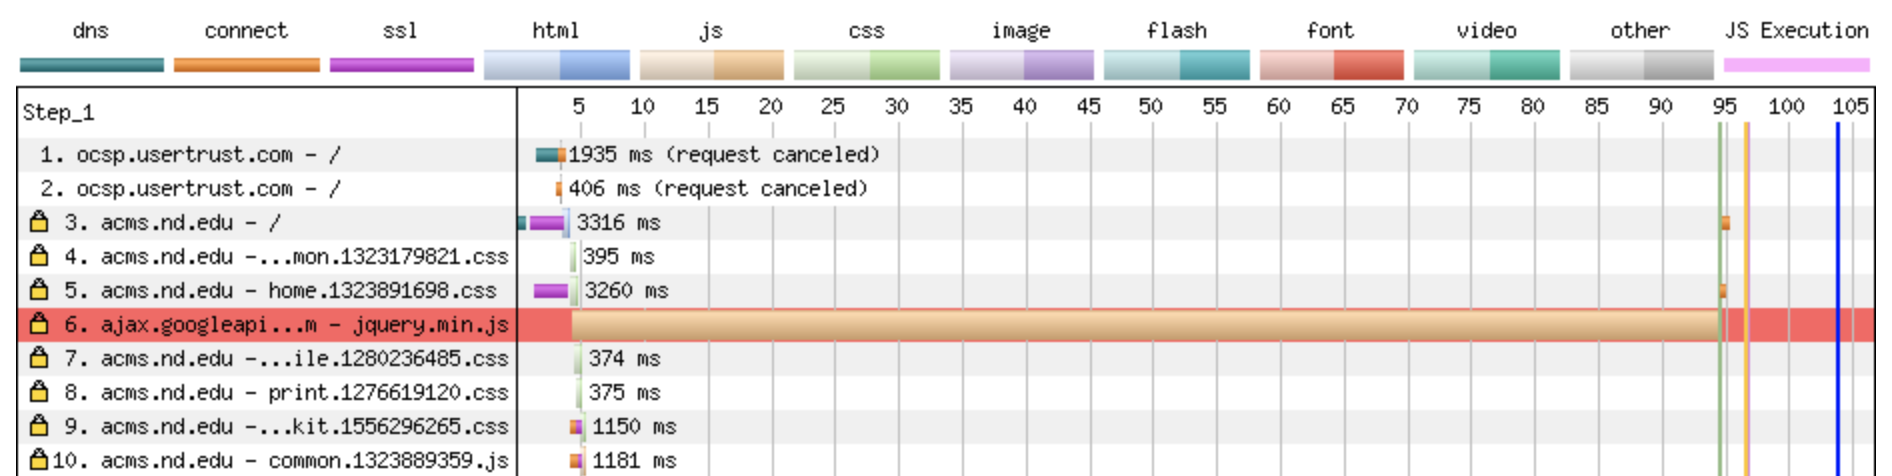 Network waterfall showing the CDN hosted version of jQuery blocking rendering for 90 seconds.